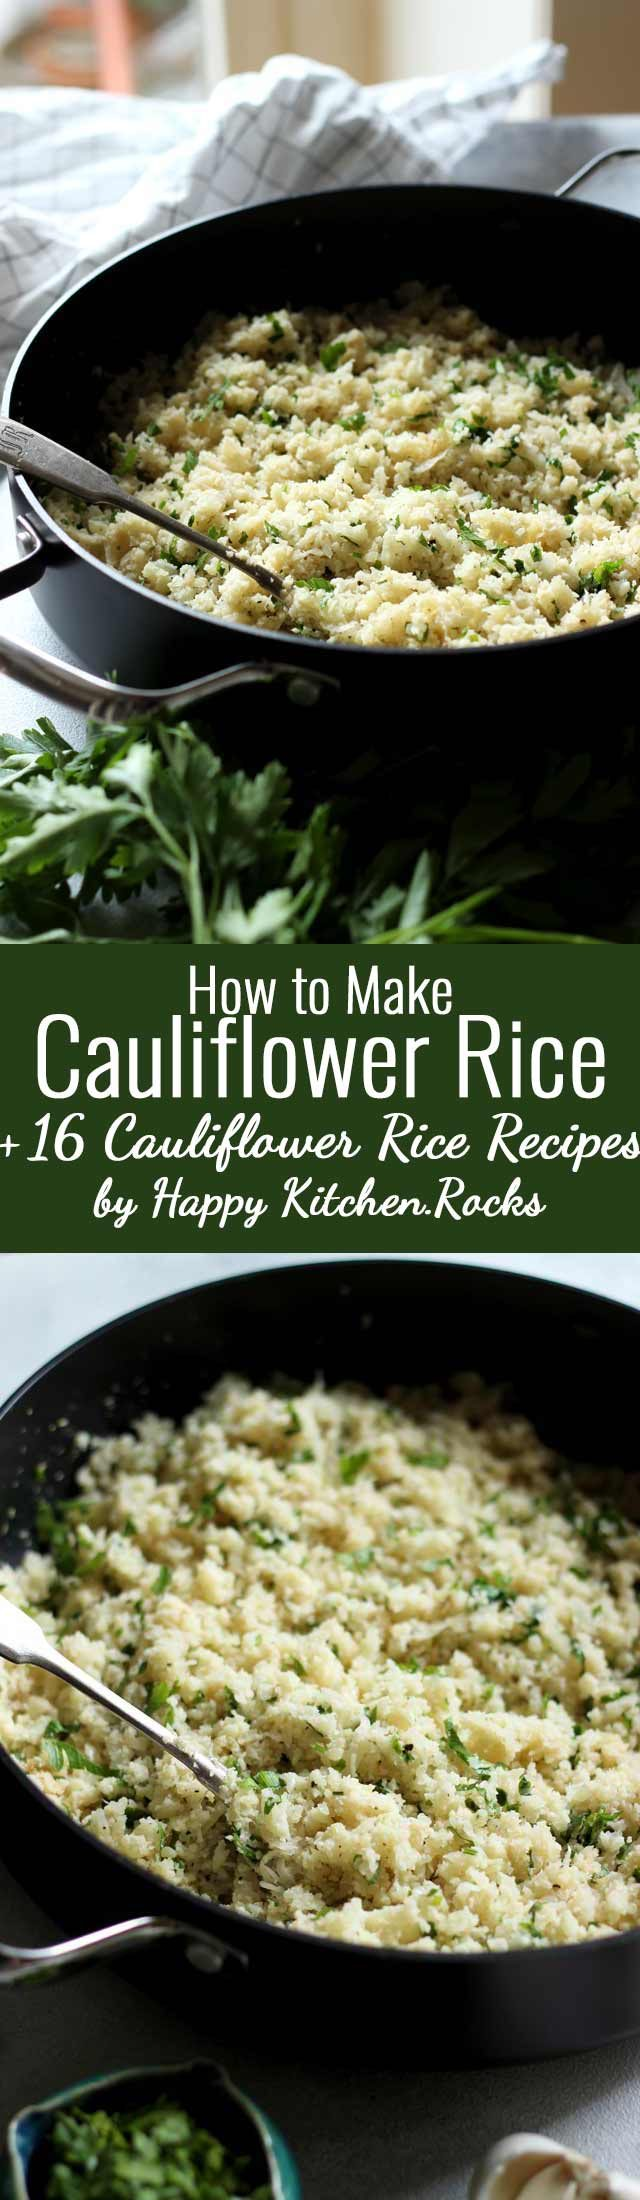 Light and fluffy basic Cauliflower Rice recipe used to make delicious gluten-free and low carb sides, risotto, fried rice, salads, soups, burrito bowls, sushi and more! Step-by-step video guide on how to make cauliflower rice using a box grater plus 16 recipes that include cauliflower rice. #lowcarb #glutenfree #recipes #healthyrecipes #vegan #veganrecipes #healthyveganrecipes #cleaneating #food #vegetarianrecipes